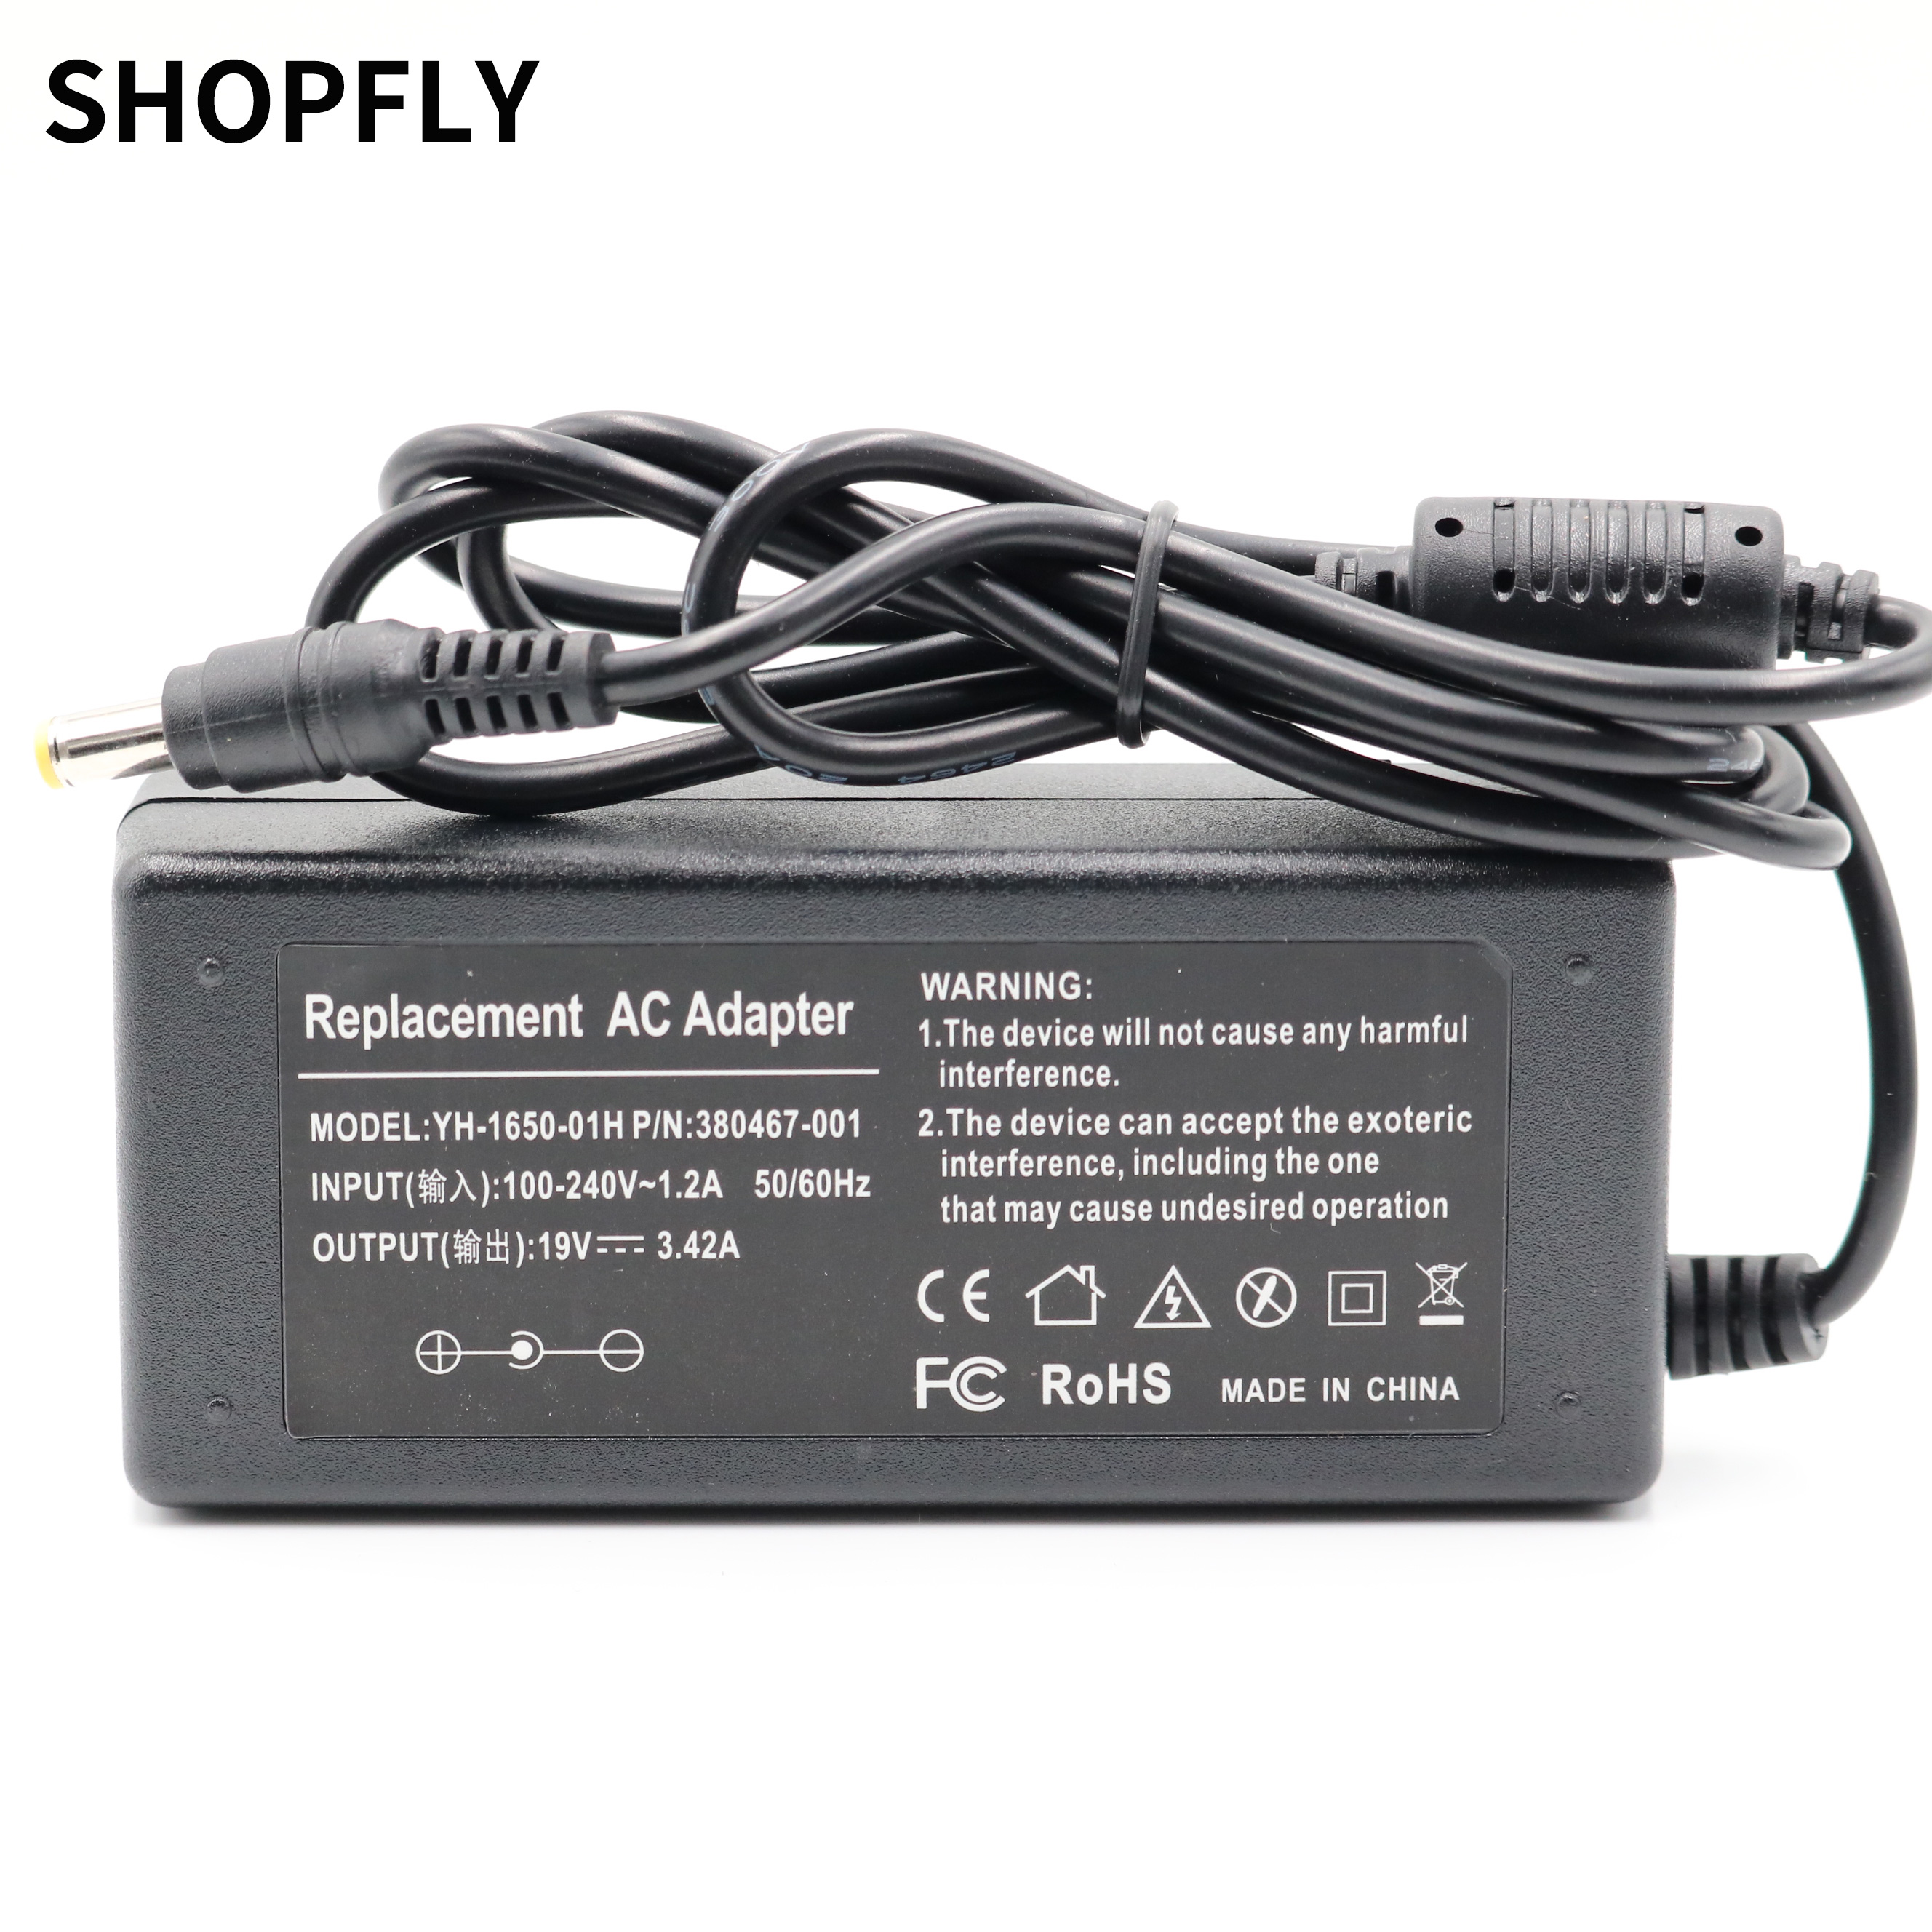 19V 3.42A Power Adapter Charger For Acer Aspire E15 E14 E11 ES1 E5 E3 E1 F15 V5 E1 R7 M5 Timeline Ultra M5 M3